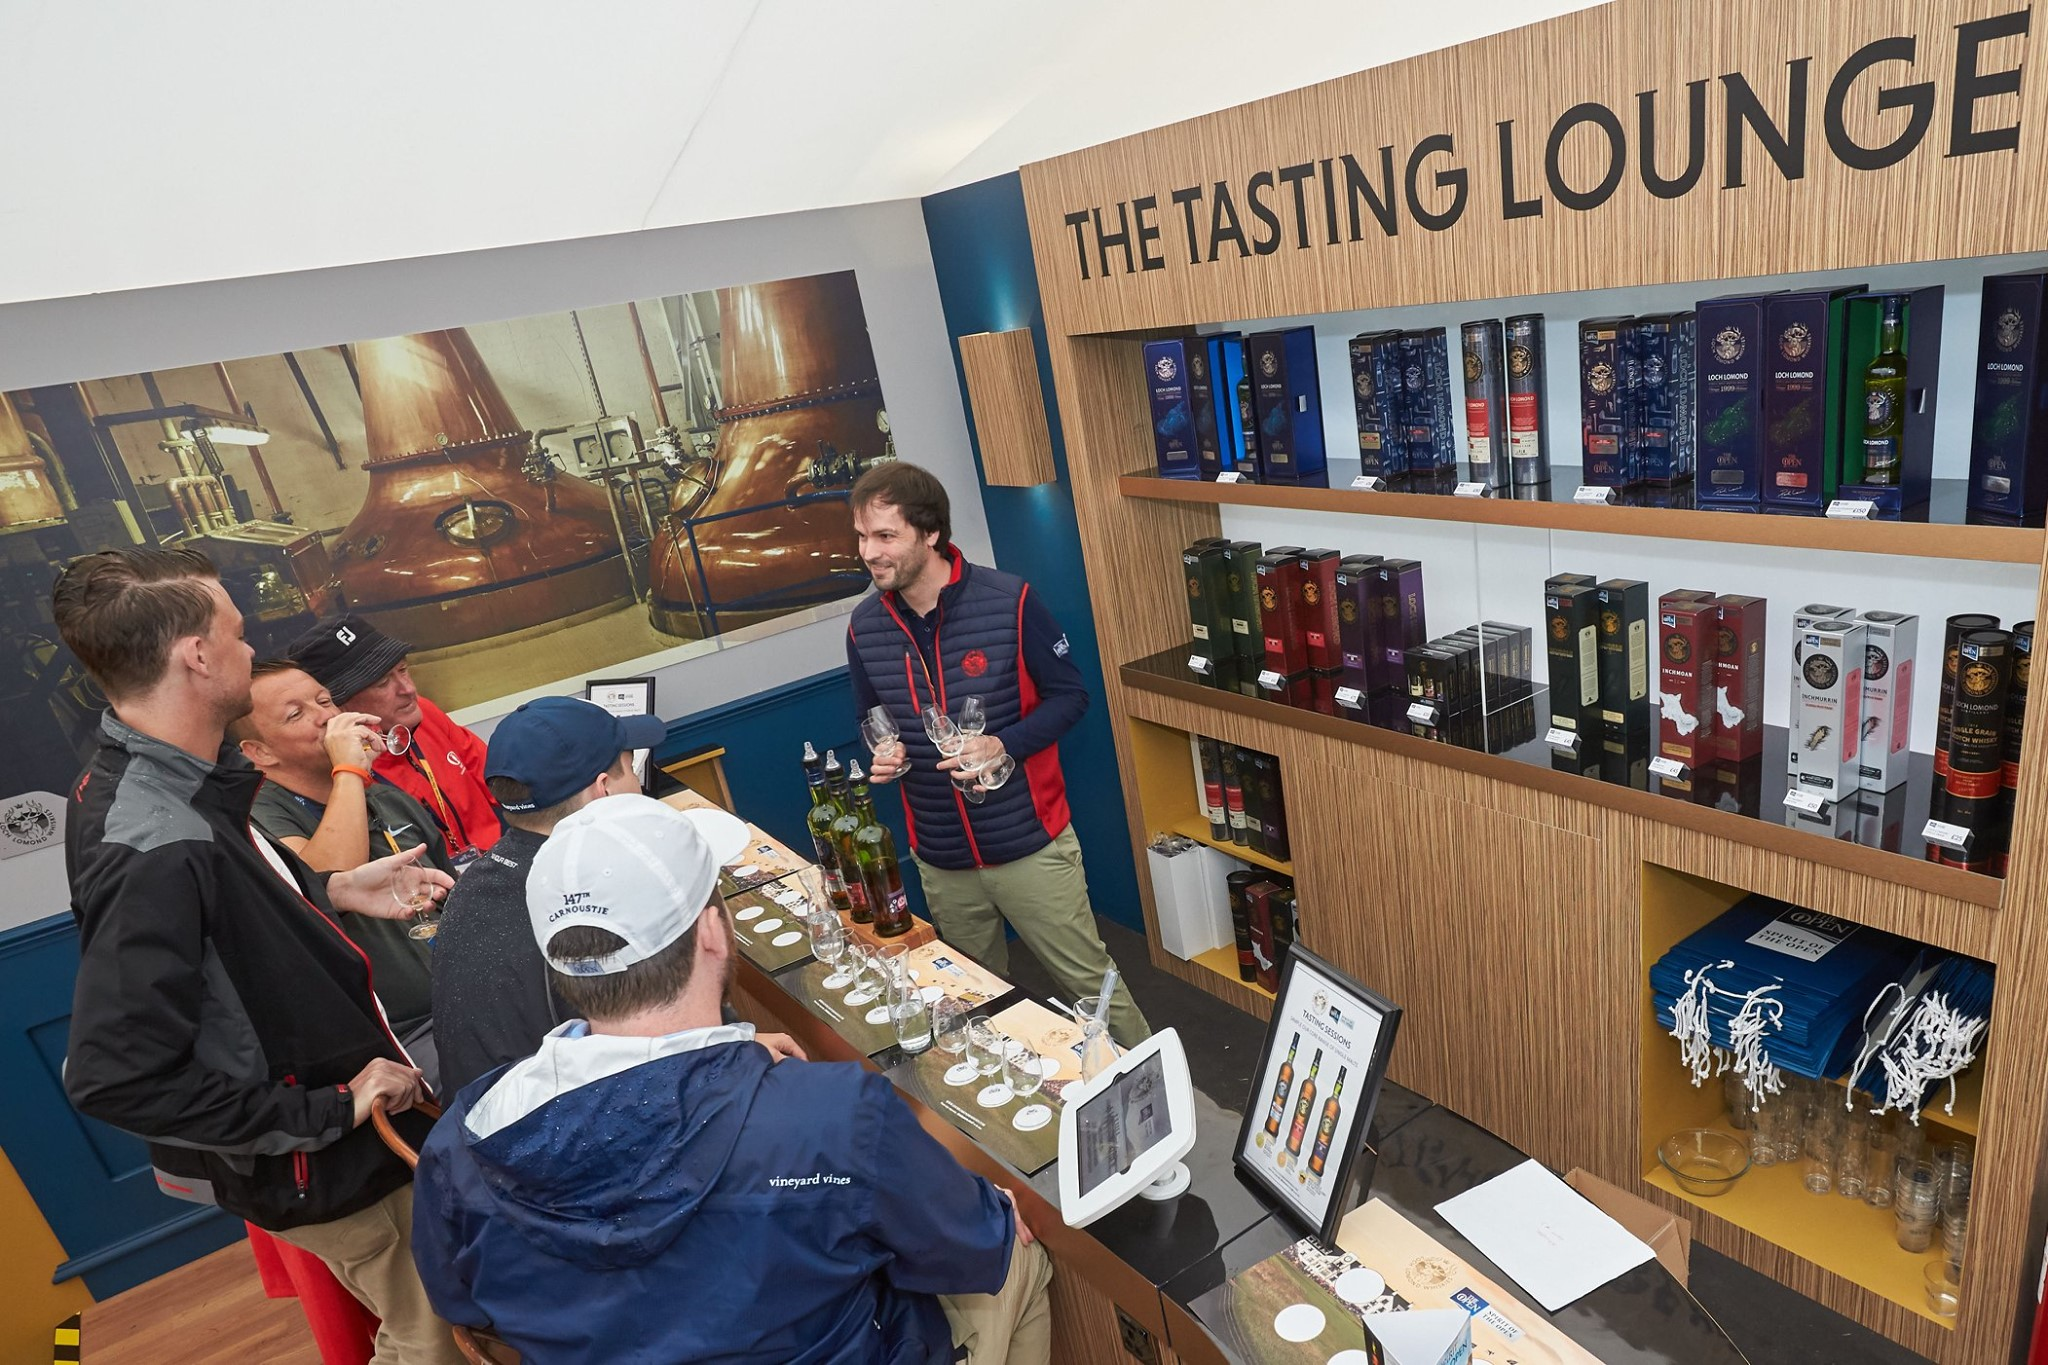 A stand at the Springfield food festival serving whisky